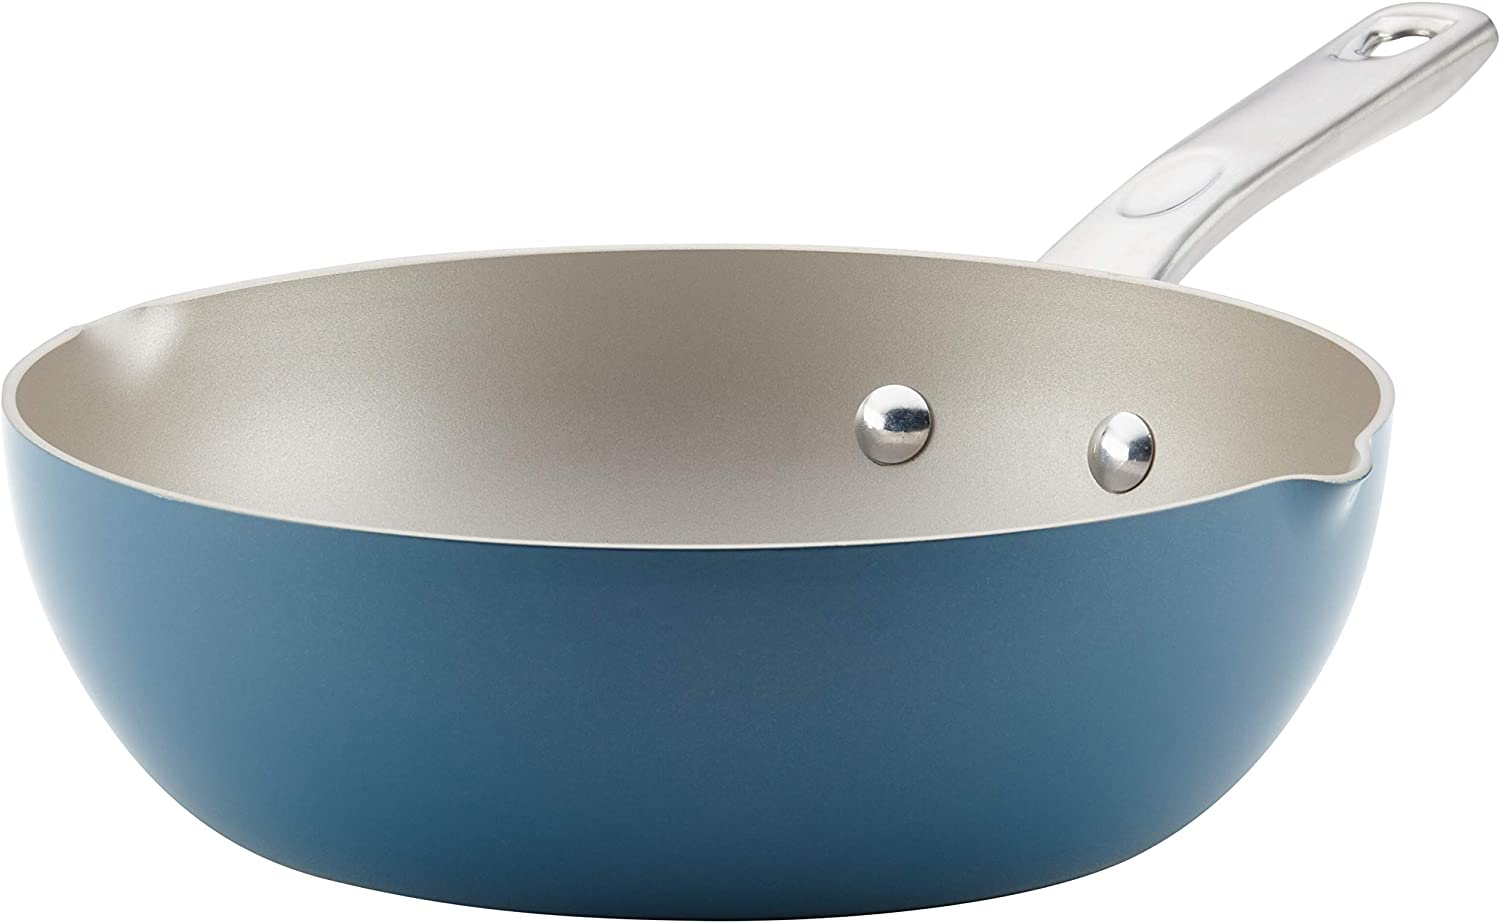 Ayesha Curry 10750 Home Collection Nonstick Fry Saute Pan/Chefpan, 9.75 Inch, Twilight Teal Blue